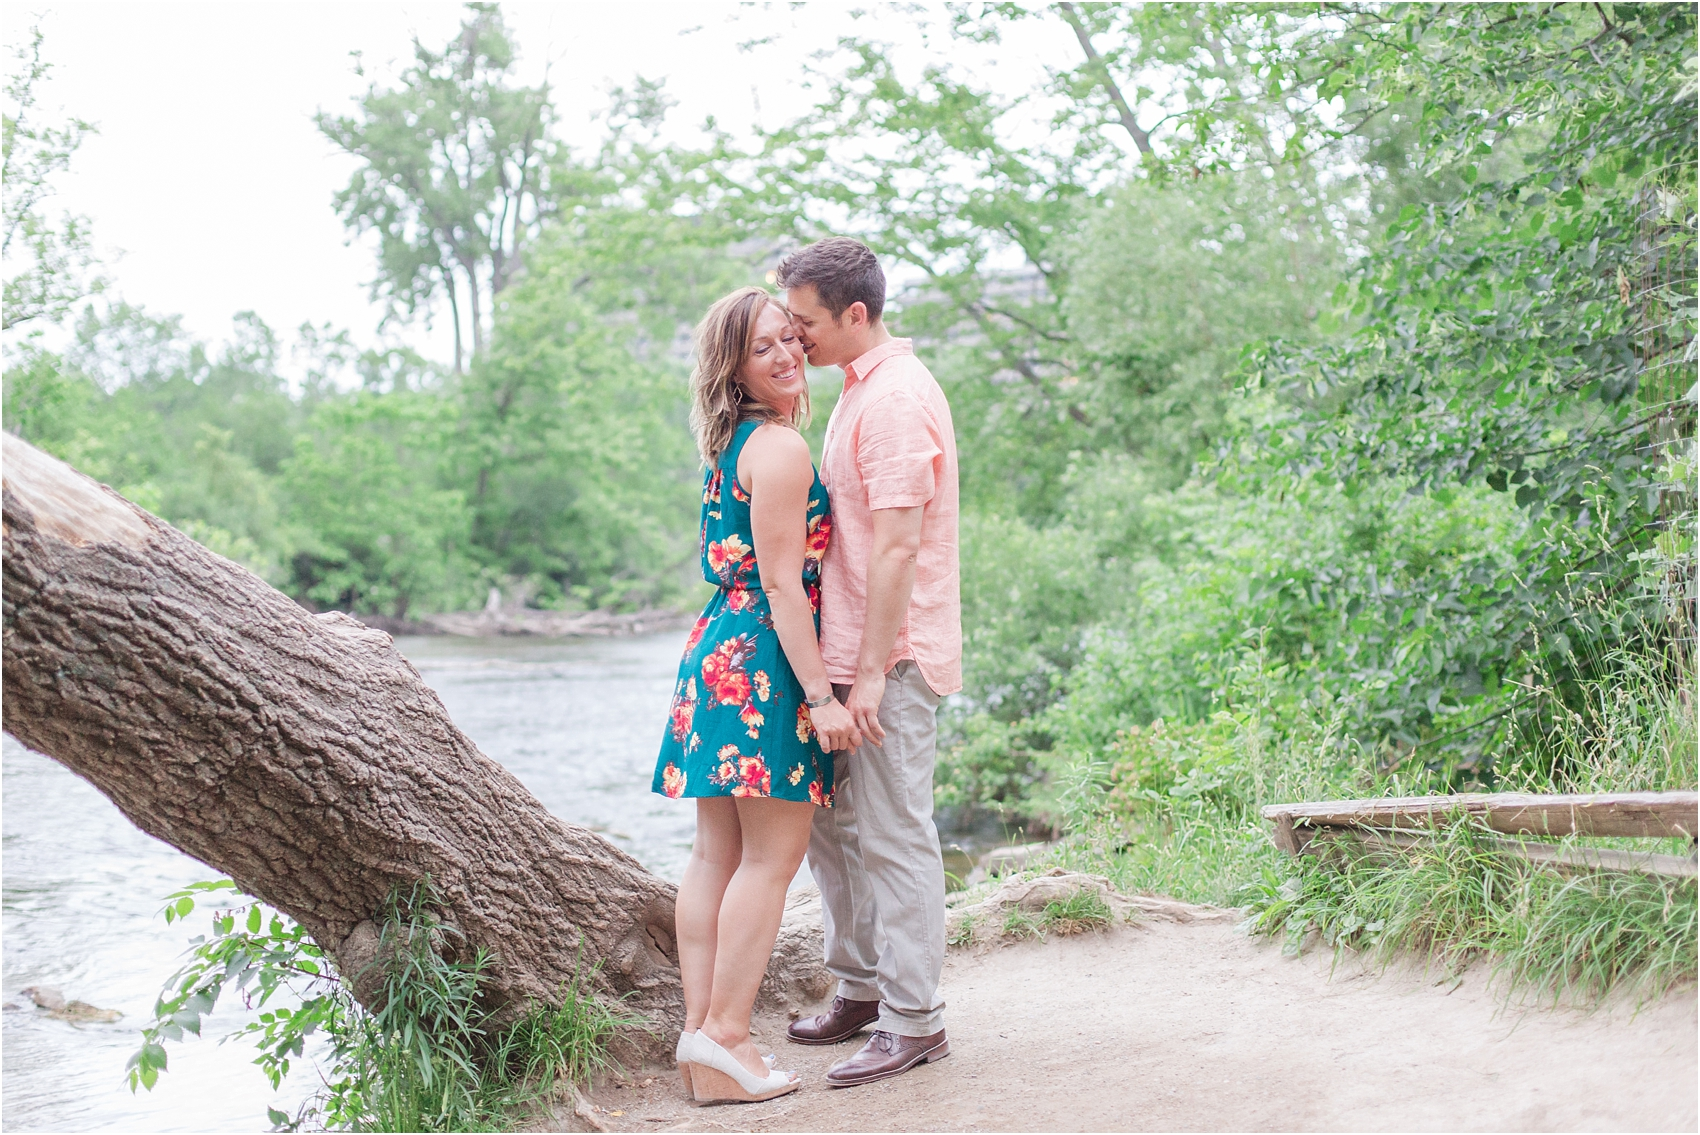 emotional-candid-romantic-engagement-photos-in-detroit-chicago-northern-michigan-by-courtney-carolyn-photography_0009.jpg